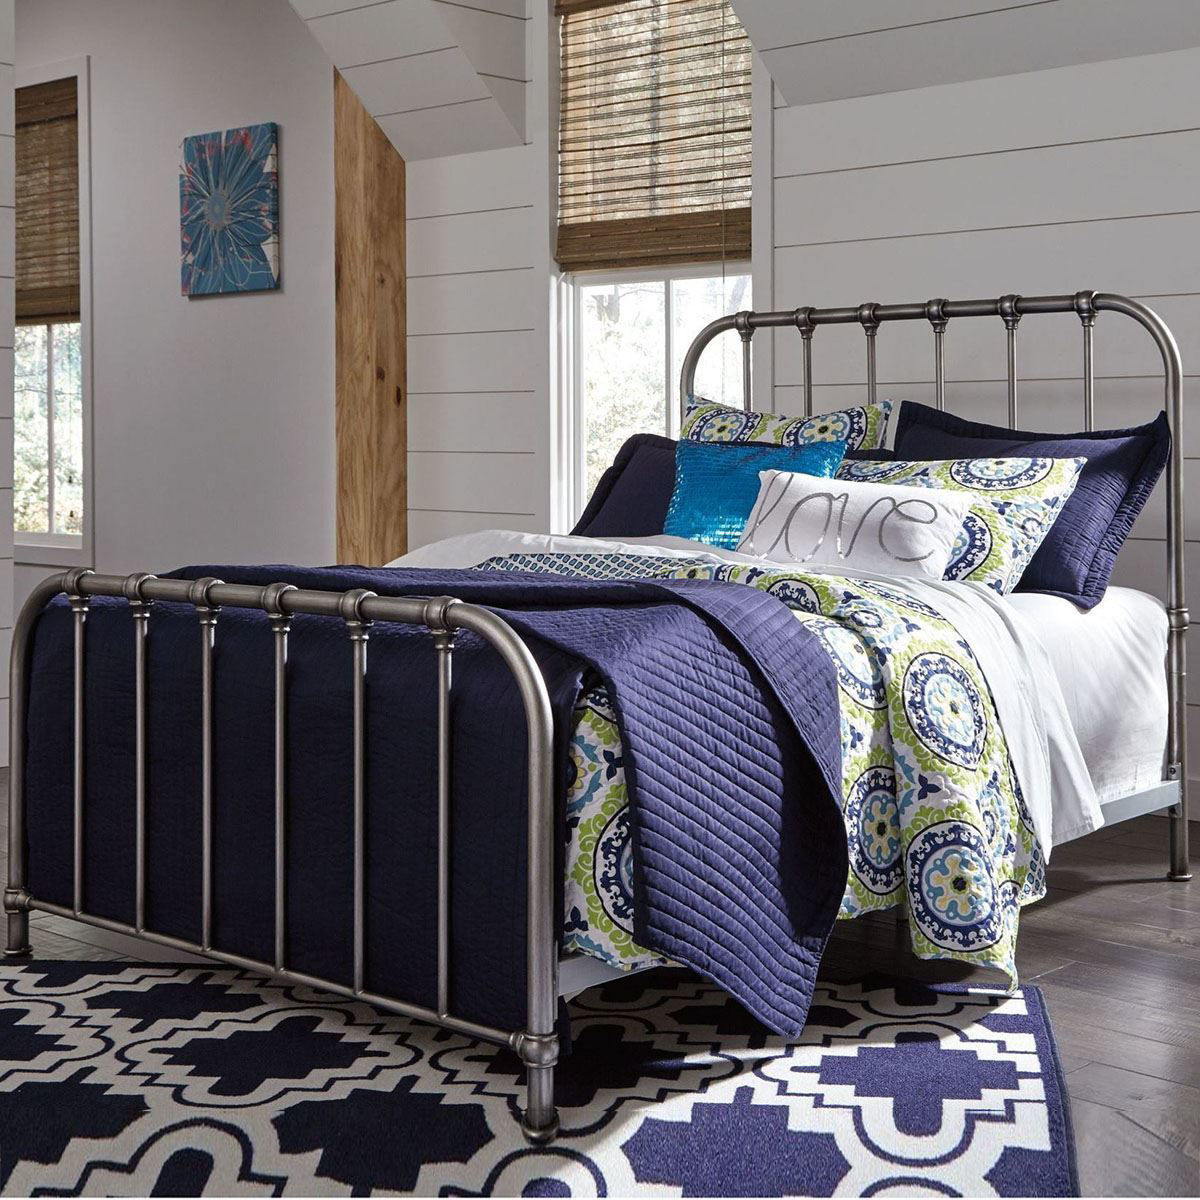 Nashville Queen Metal Bed B280 581 Bedroom Furniture At Lifestyle Furniture By Babette S